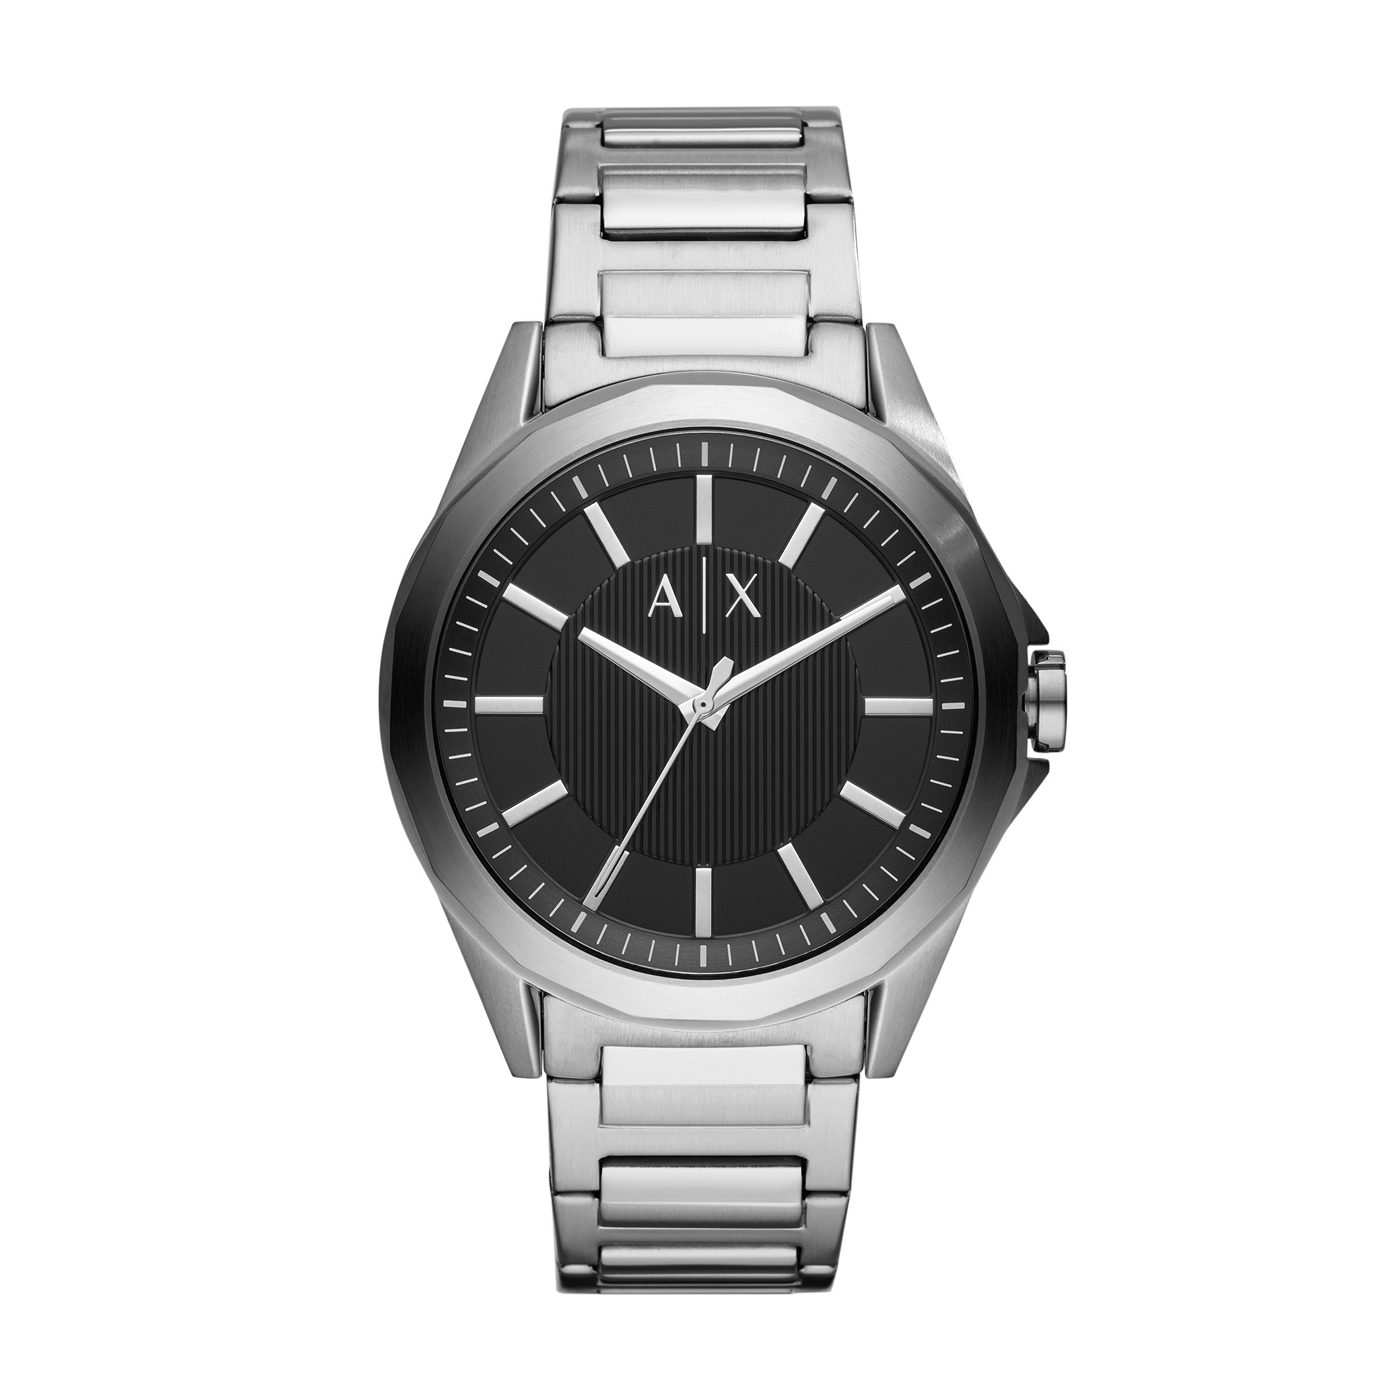 Immagine di Armani Exchange Drexler Watch AX2618